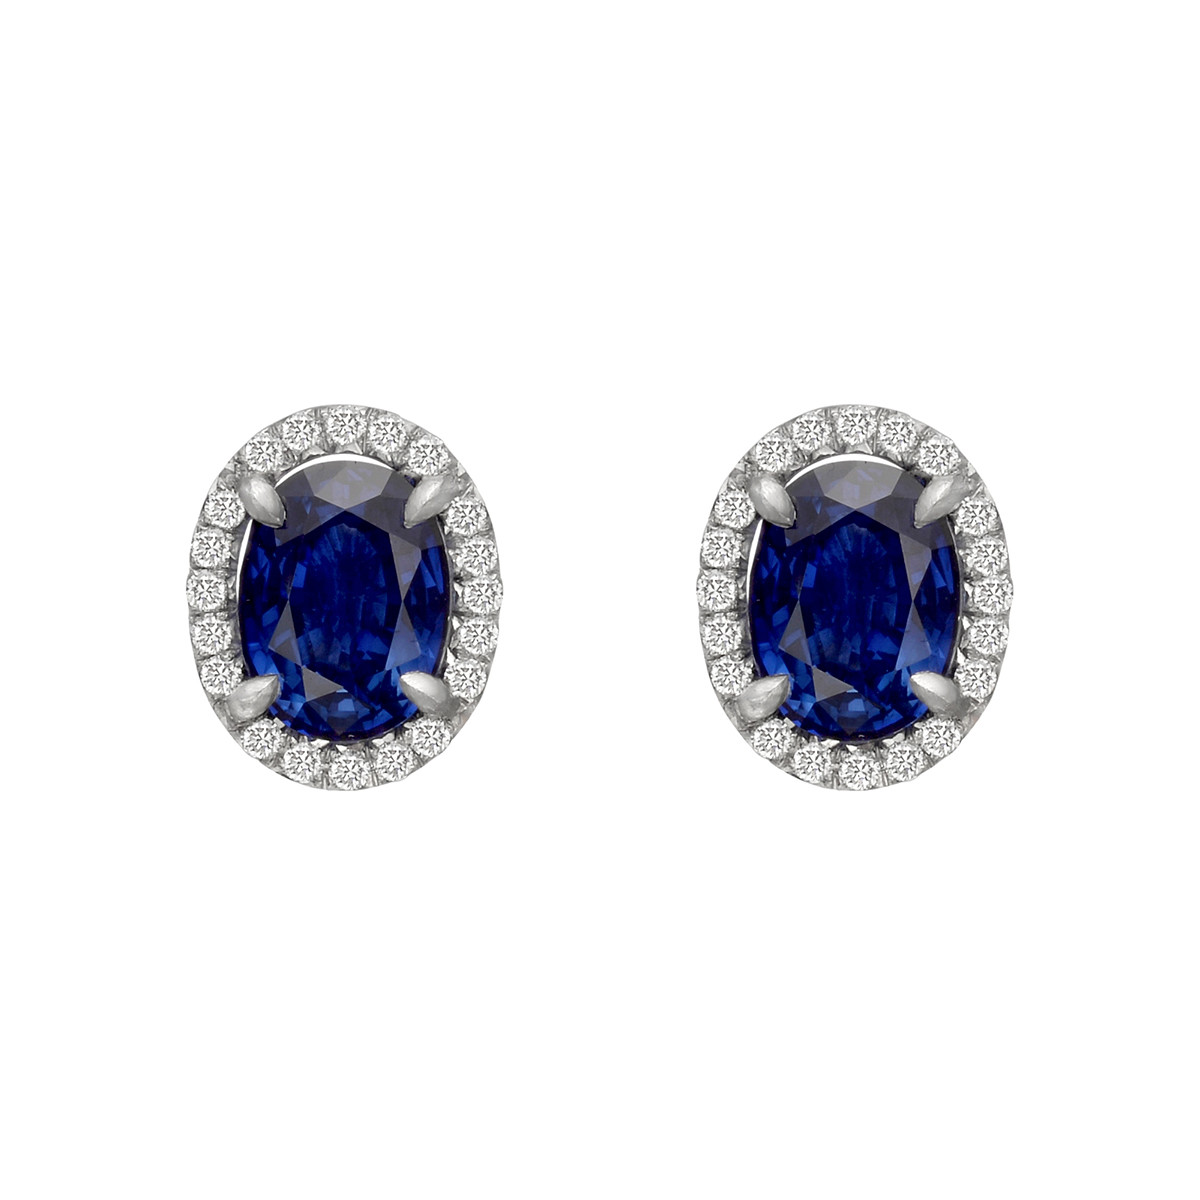 Oval Sapphire & Diamond Halo Stud Earrings